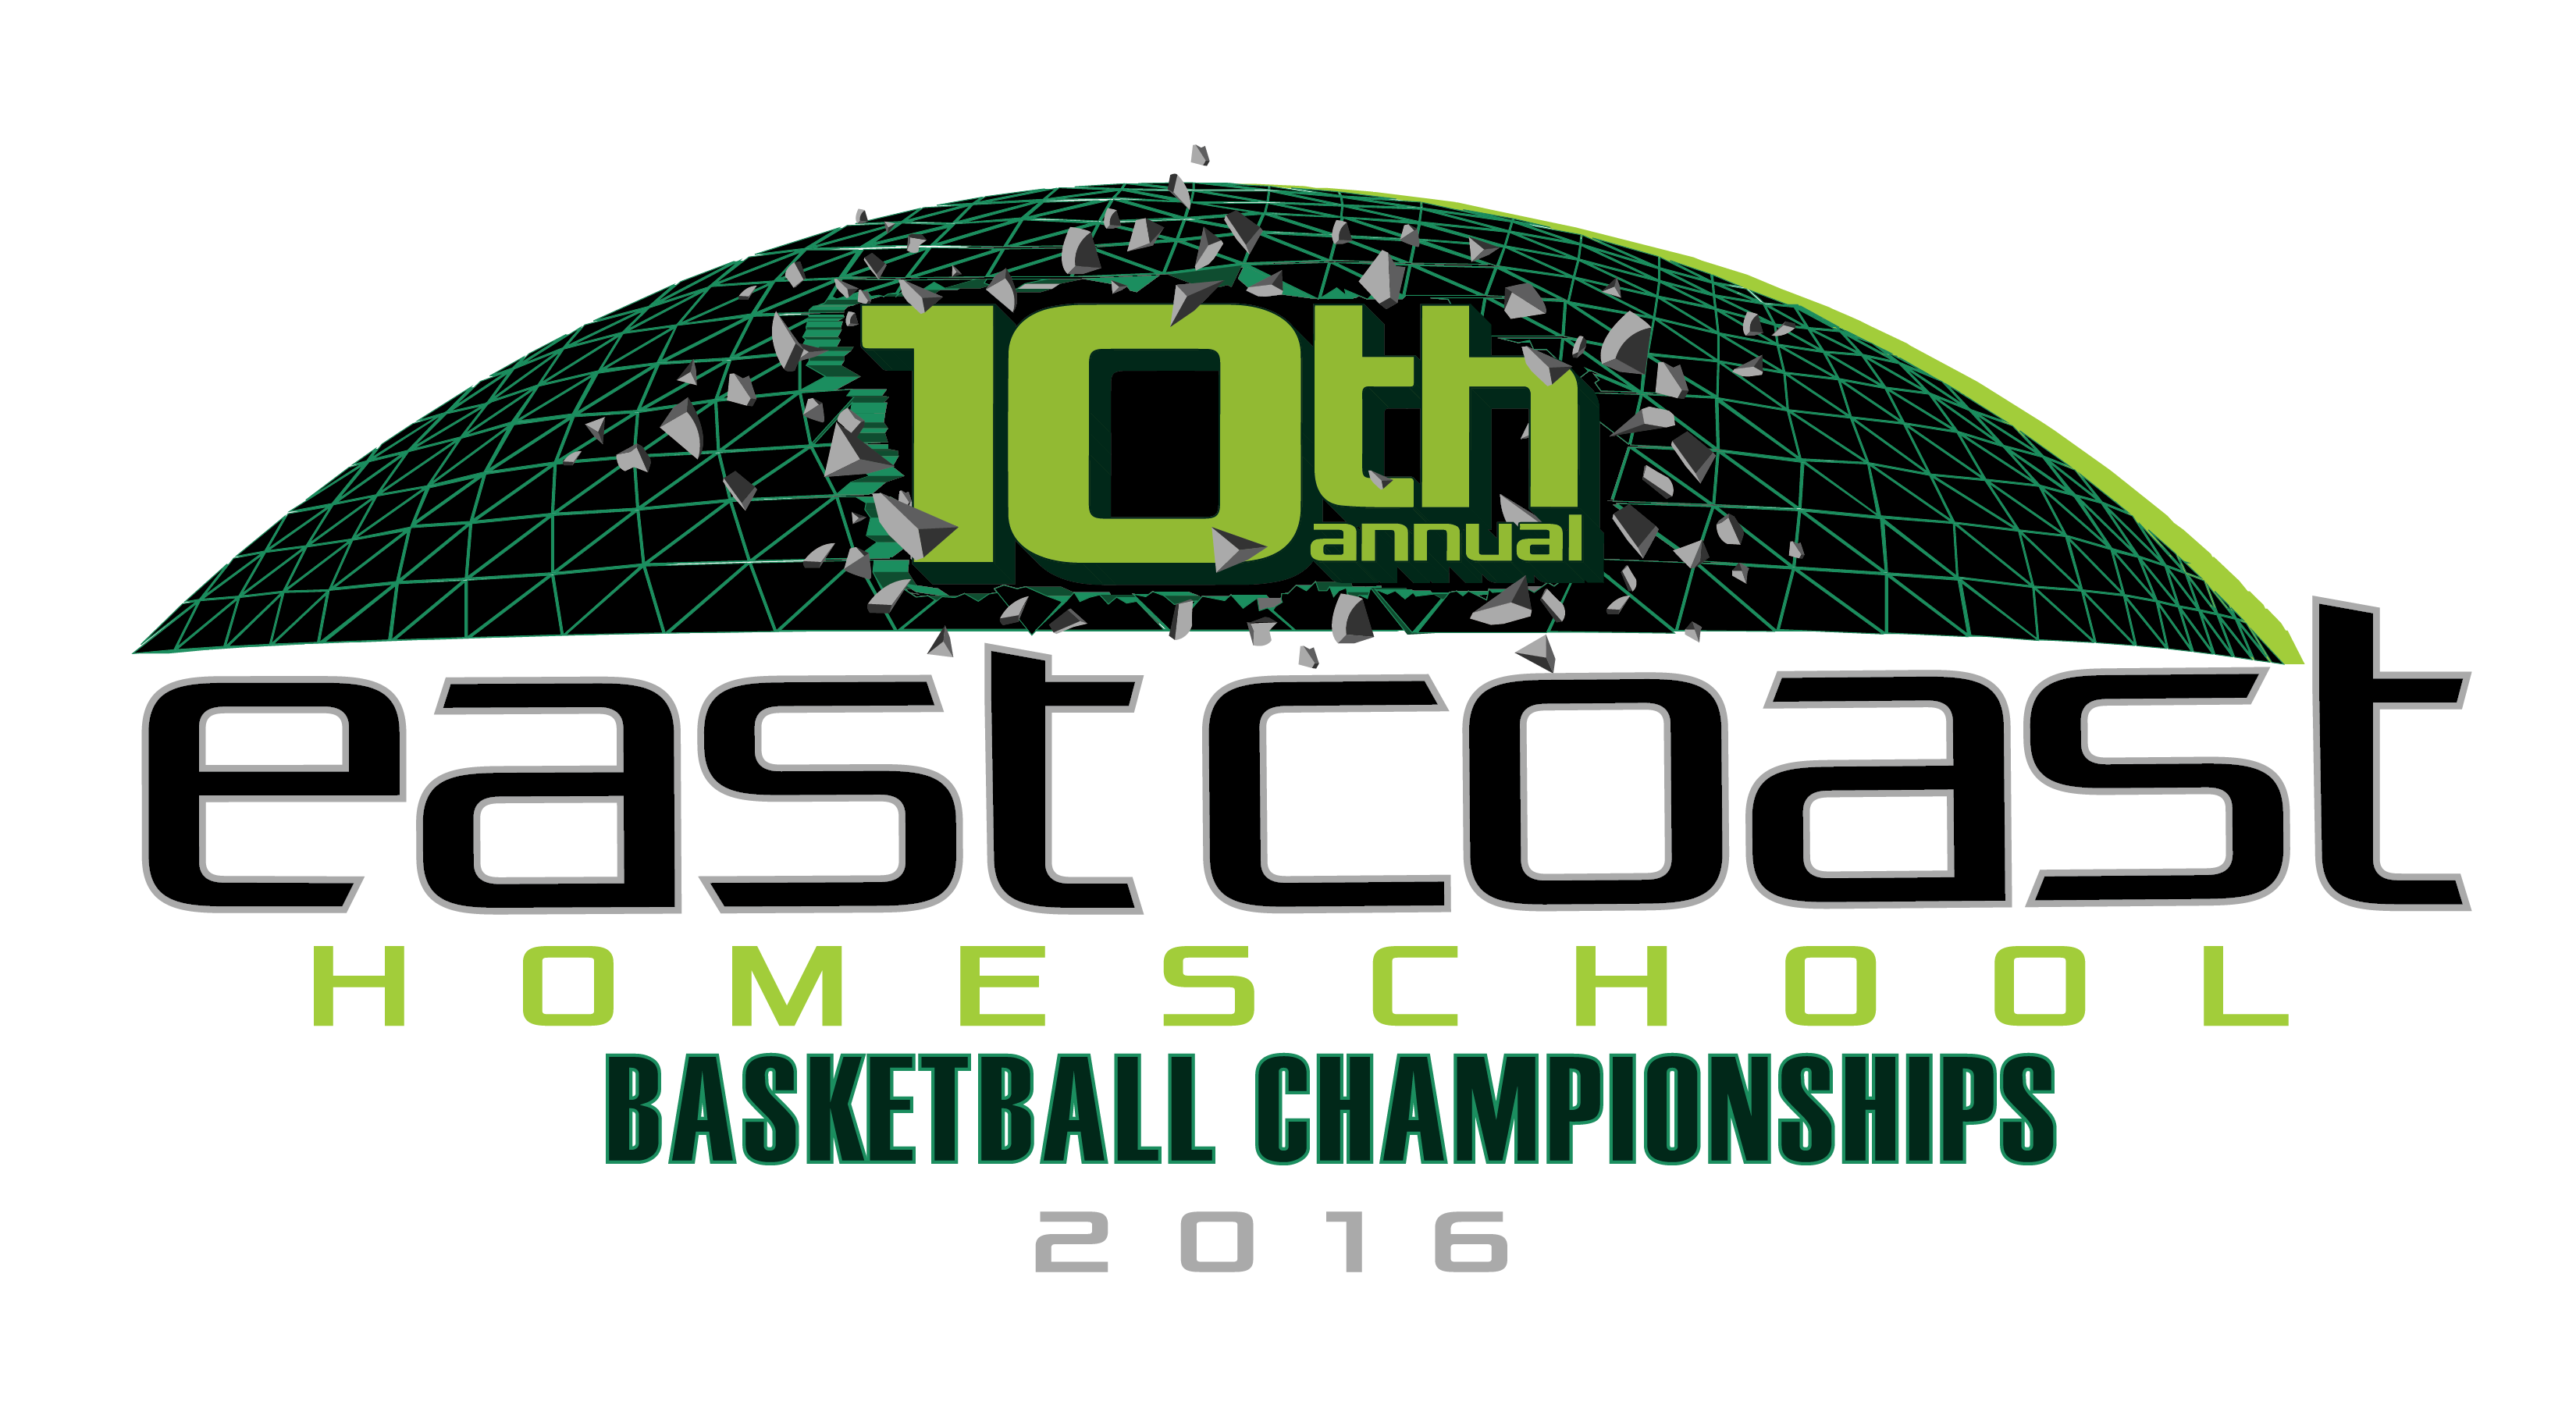 The official website of the 2016 East Coast Homeschool Basketball Championships